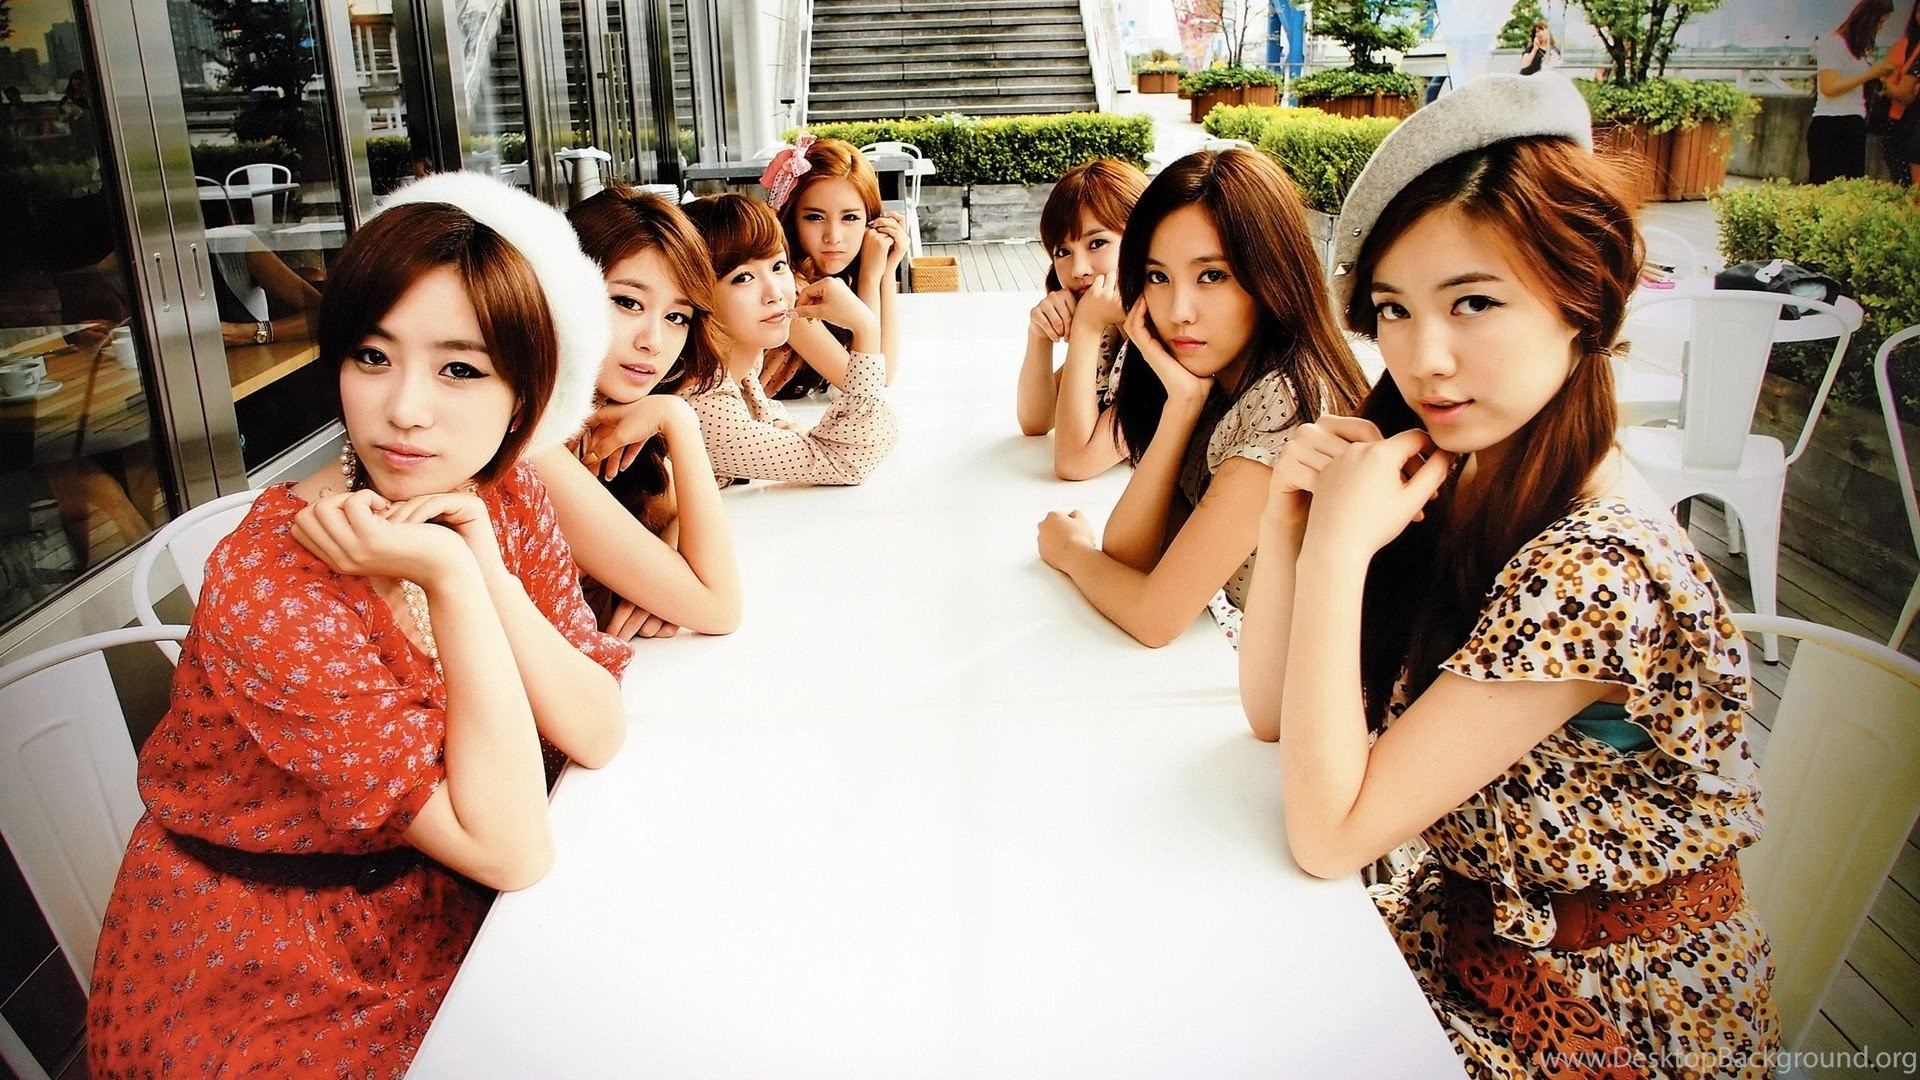 Women models asians t ara wallpapers desktop background - T ara wallpaper hd ...